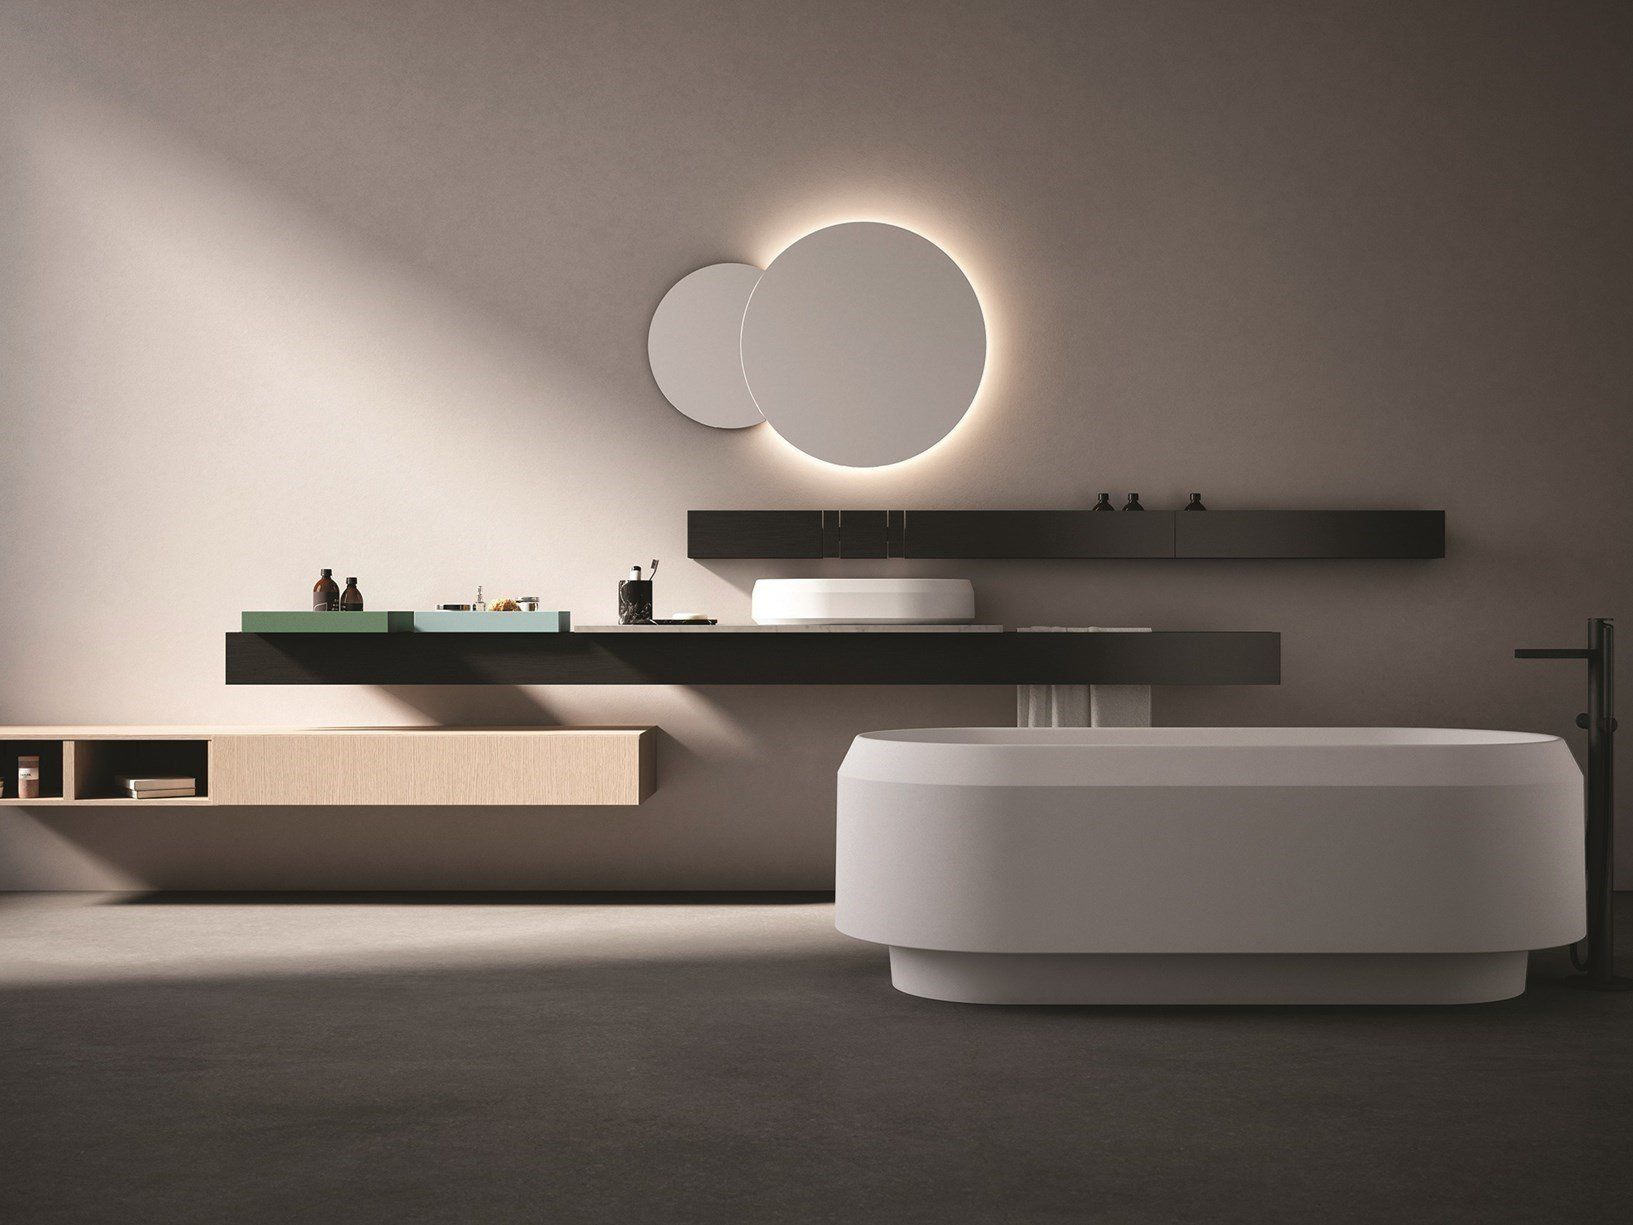 Etagere Pour Vasque A Poser the architecture of the bathroom according to agape